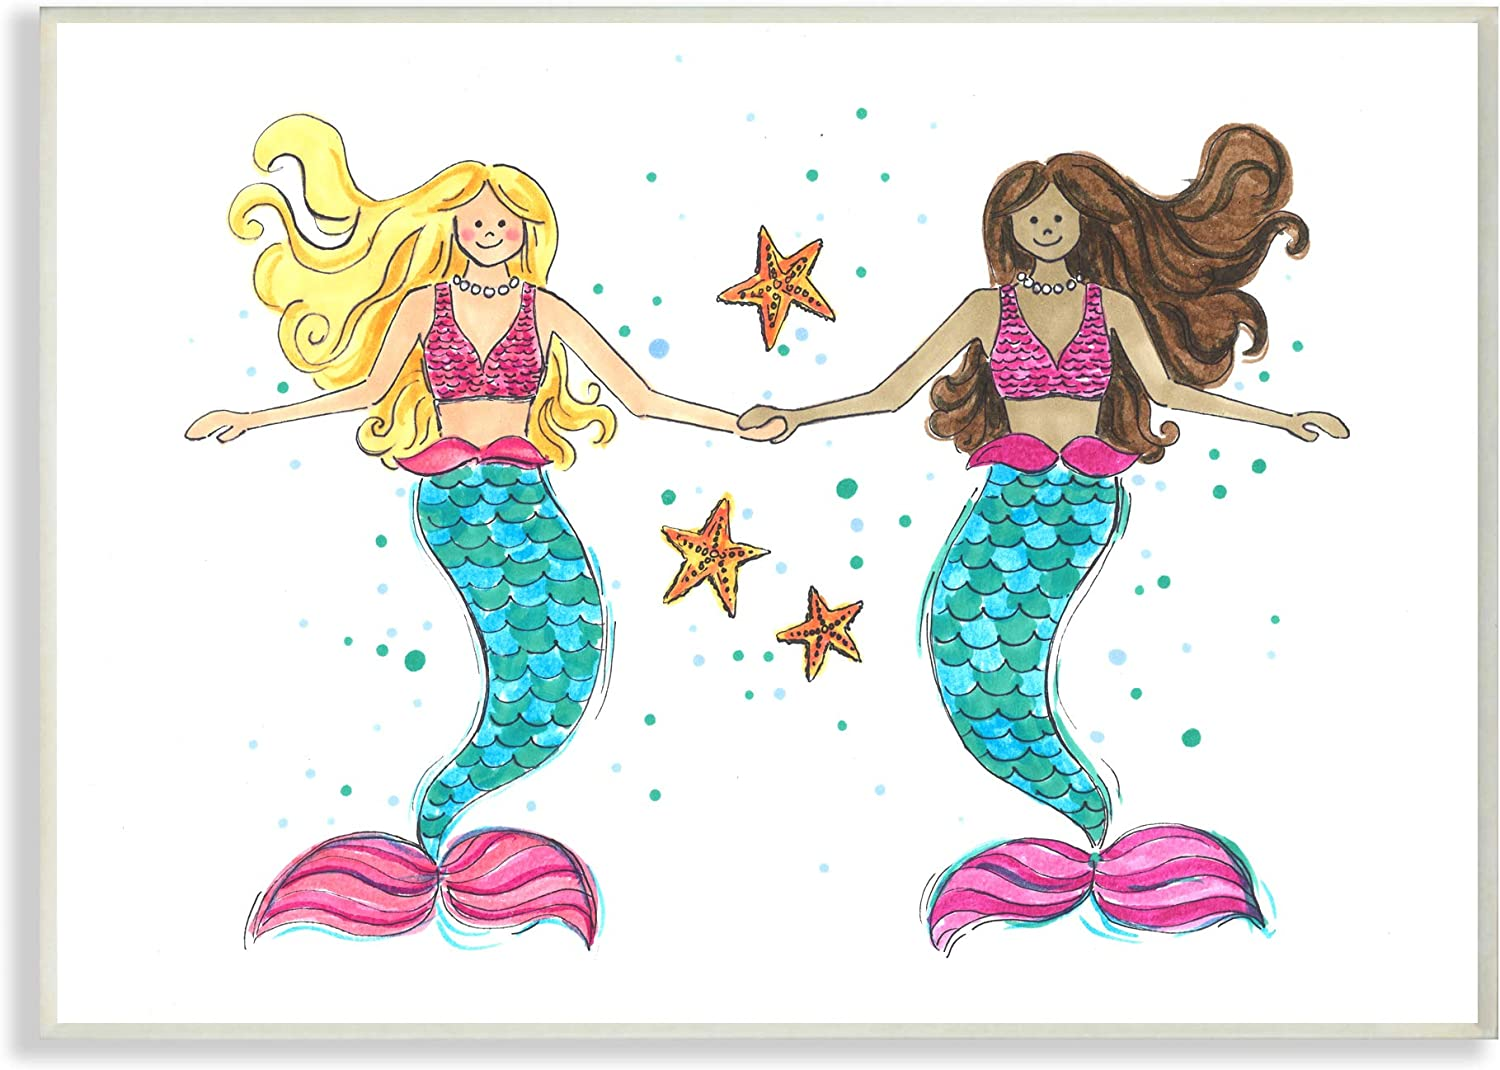 The Kids Room by Stupell Two bluee and Pink Mermaid Friends with Starfish Wall Plaque Art, 13 X 19, Multi-color